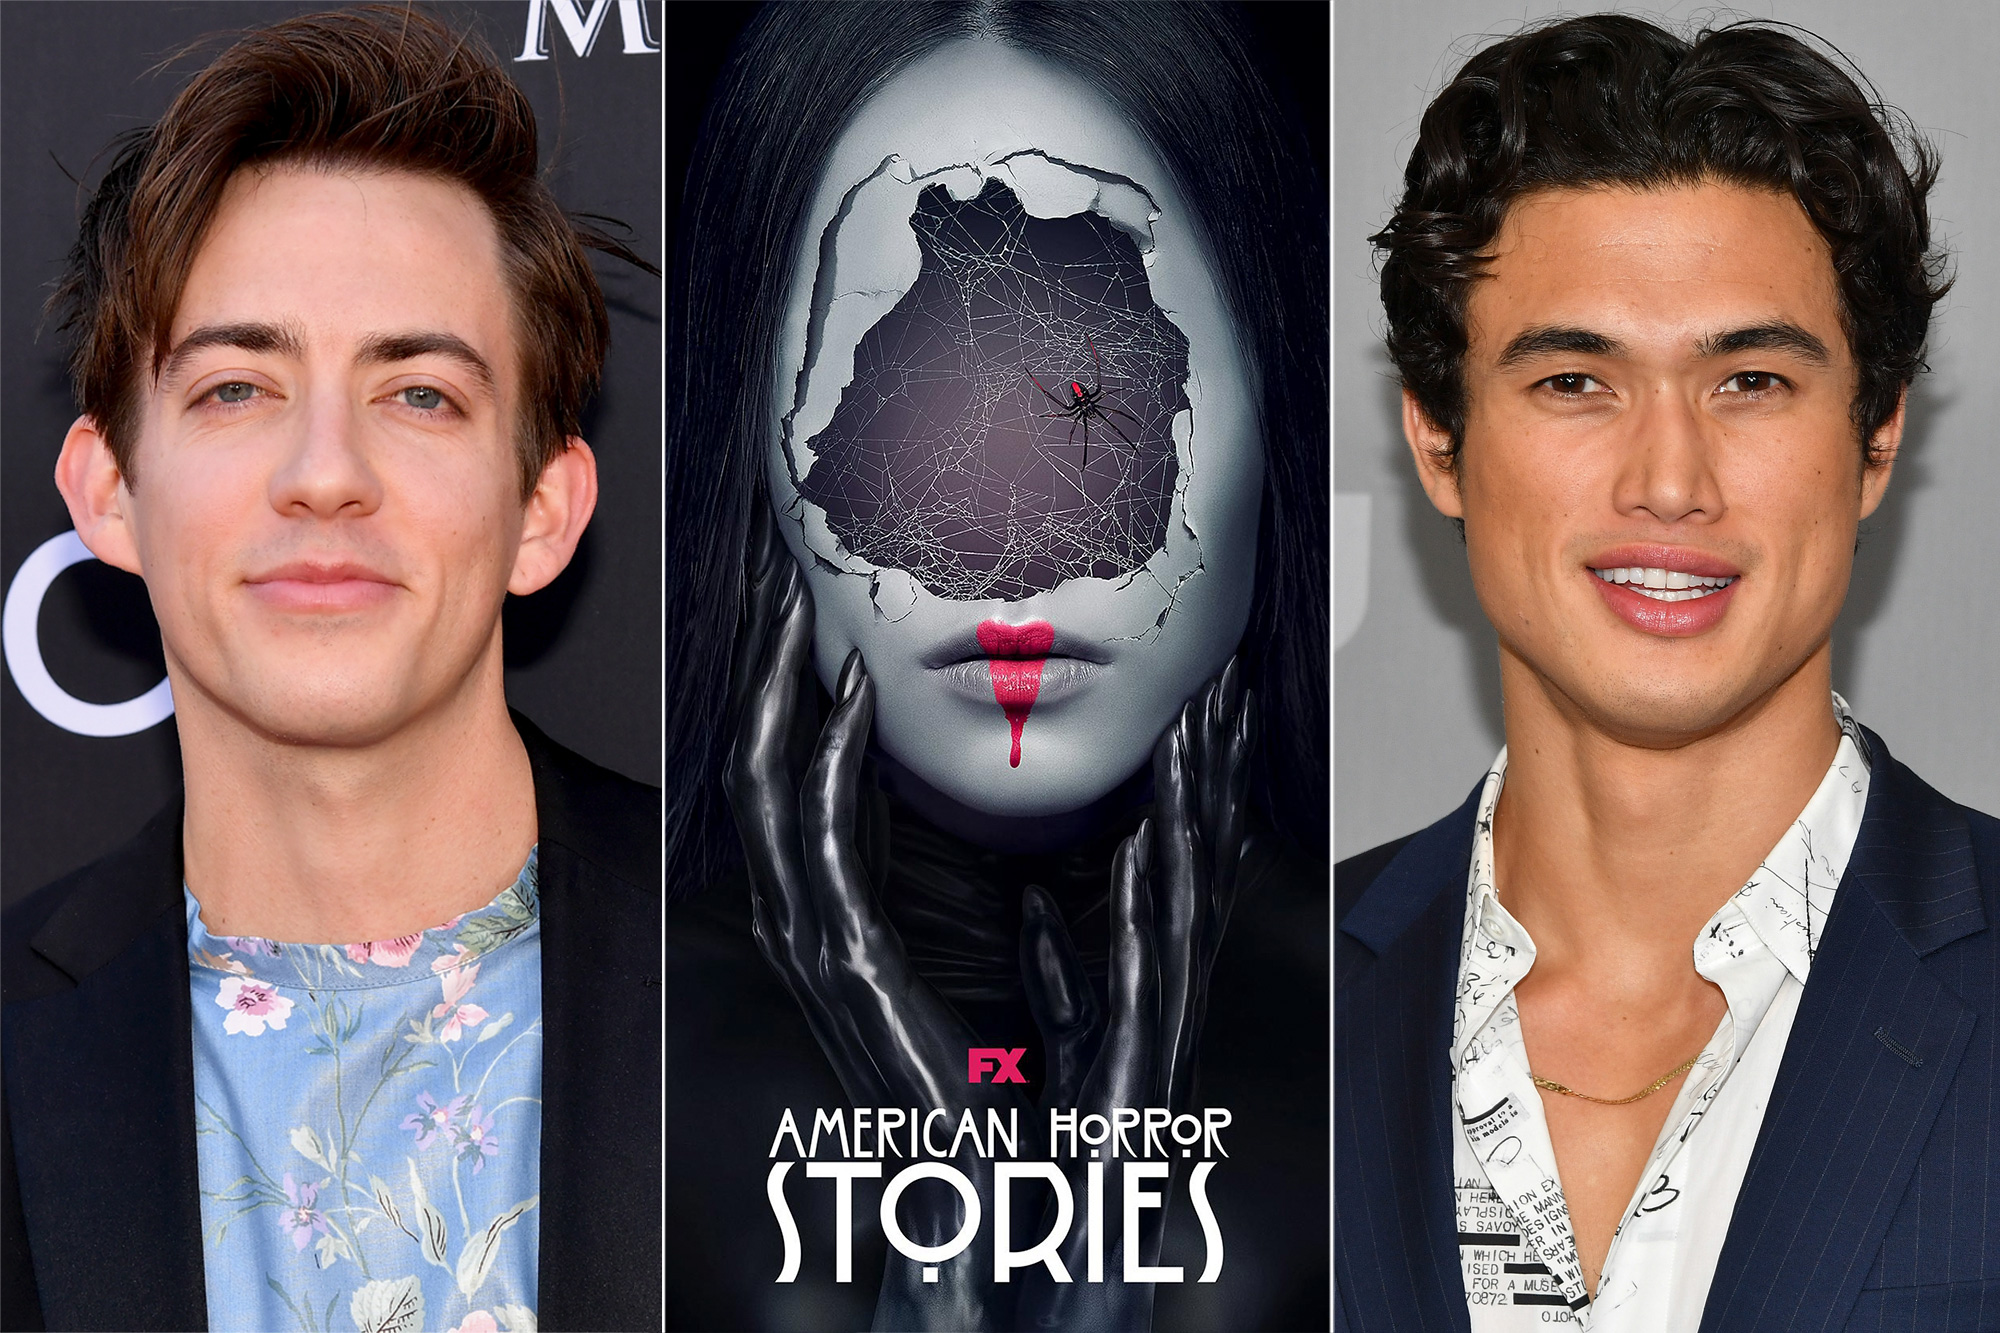 American Horror Stories scares up Kevin McHale, Charles Melton, more |  EW.com